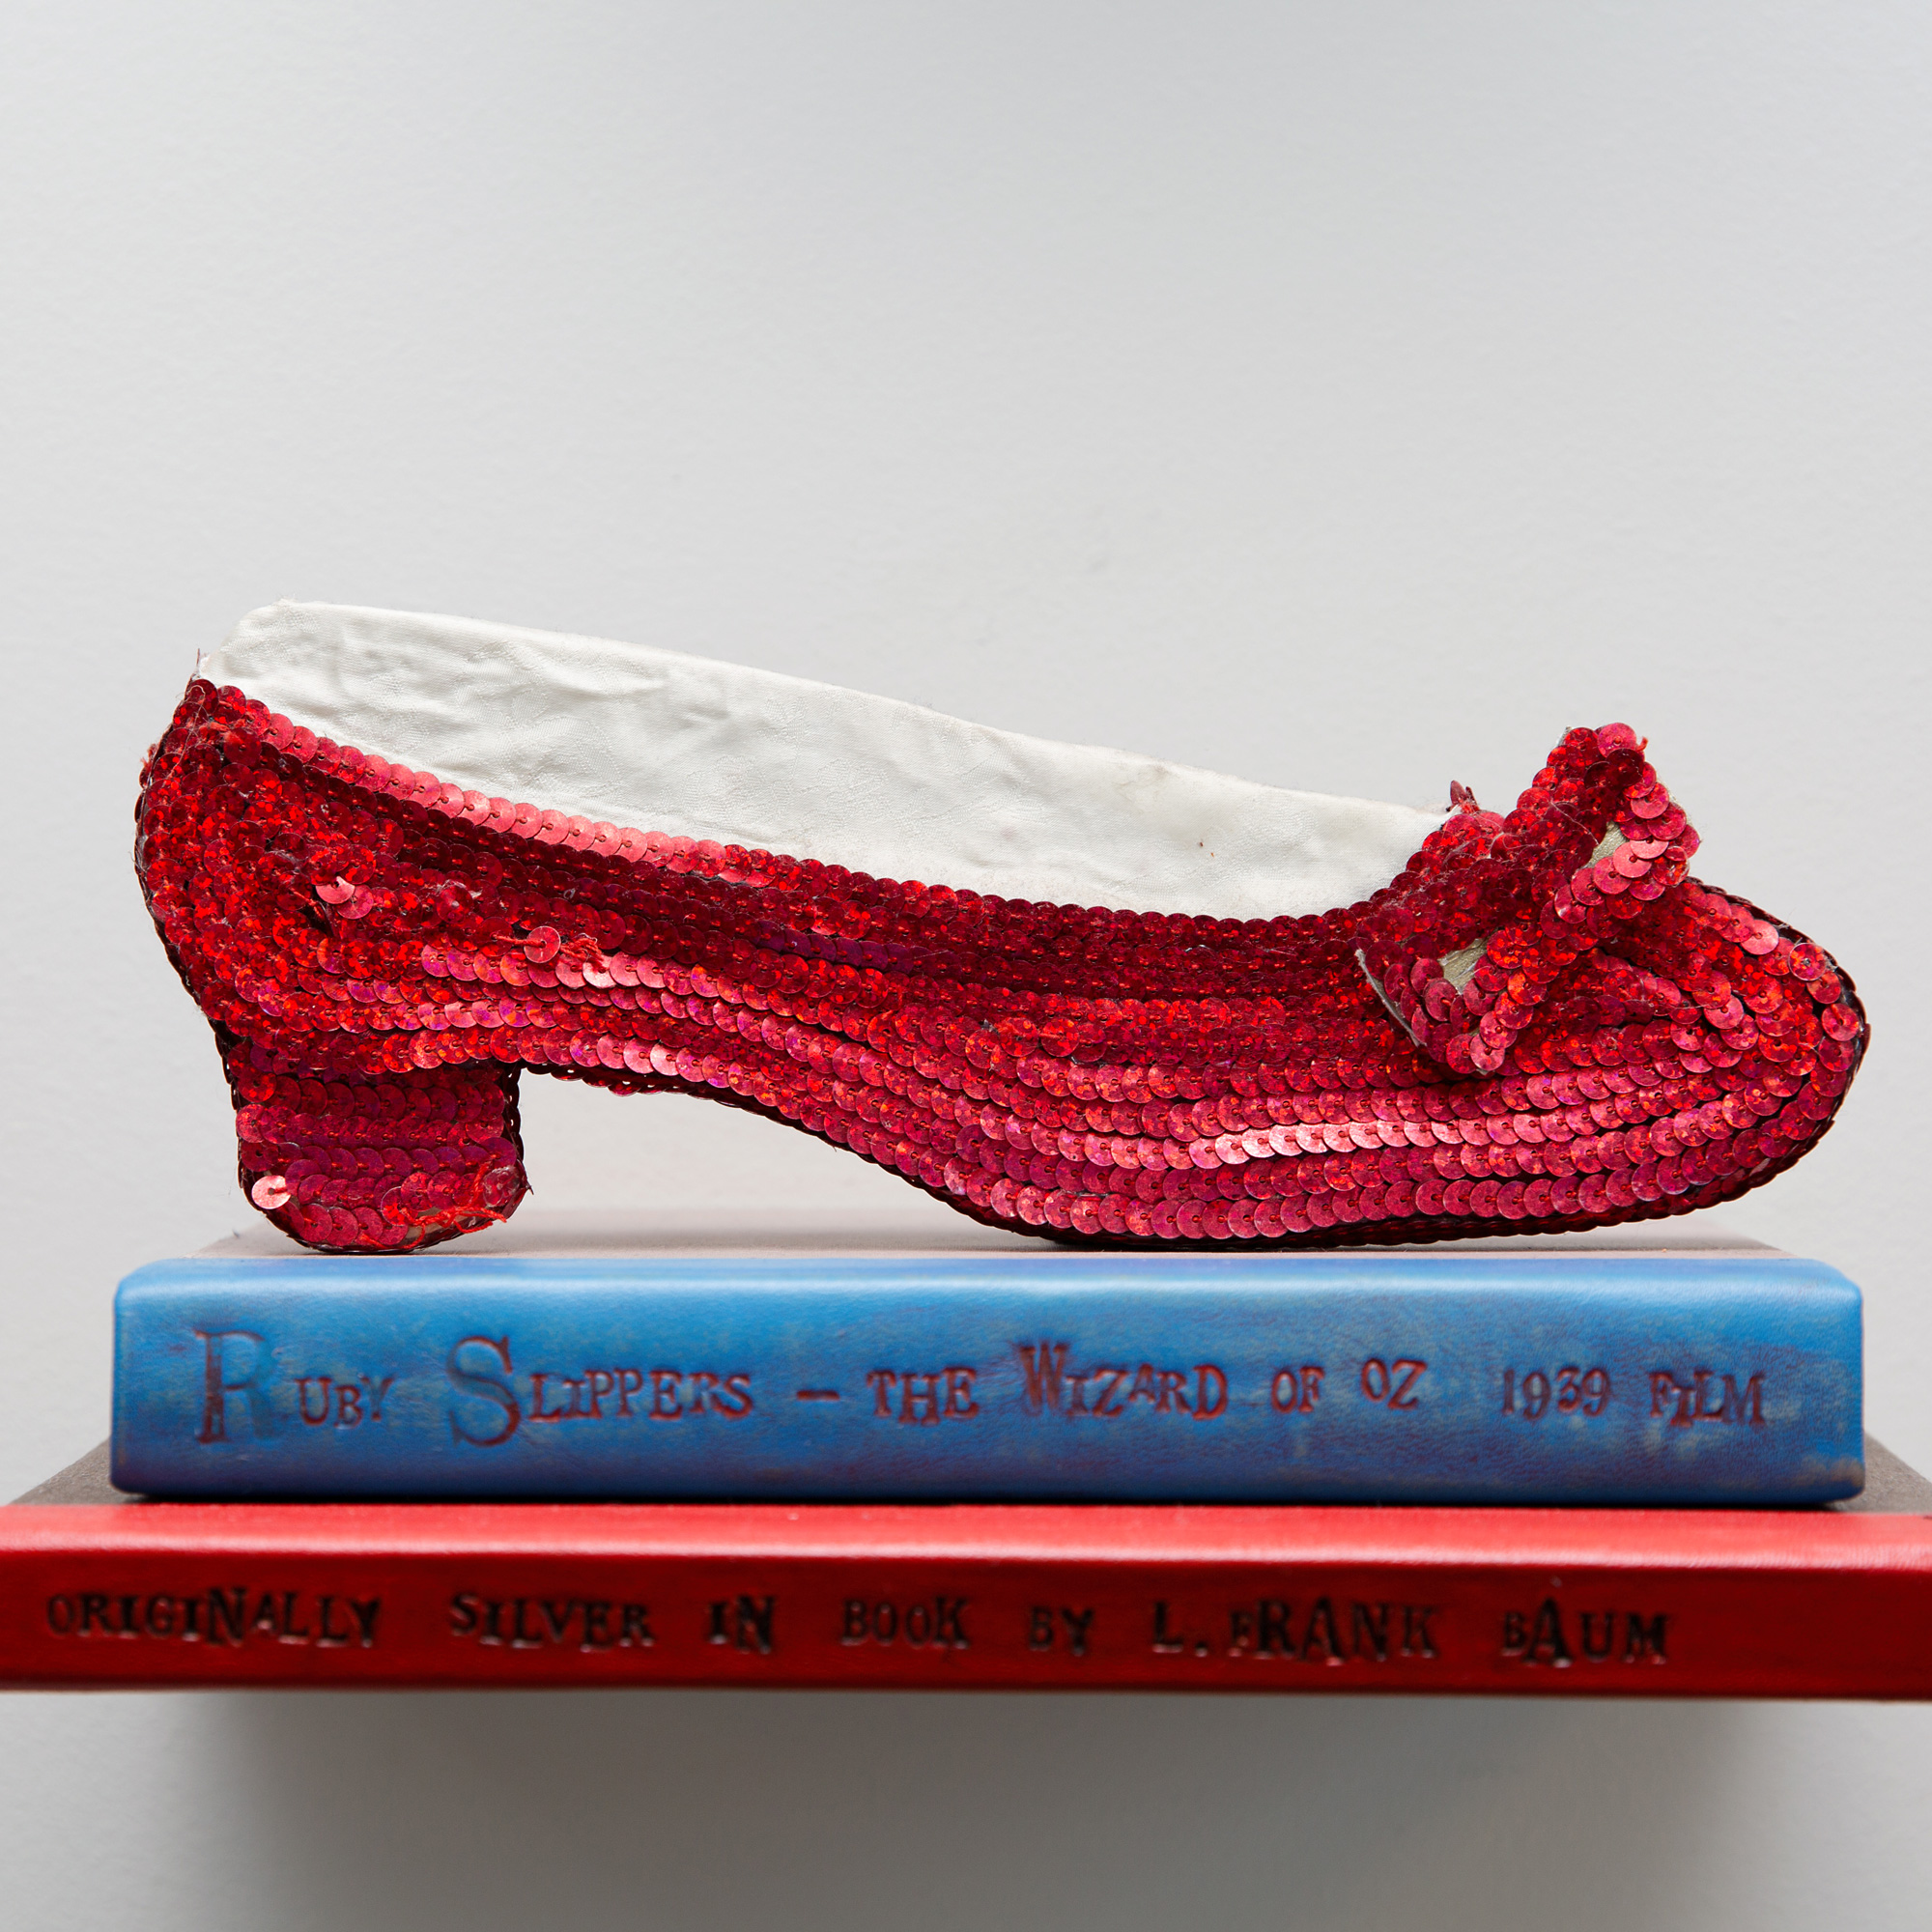 hand made two dimensional red shoe in art display